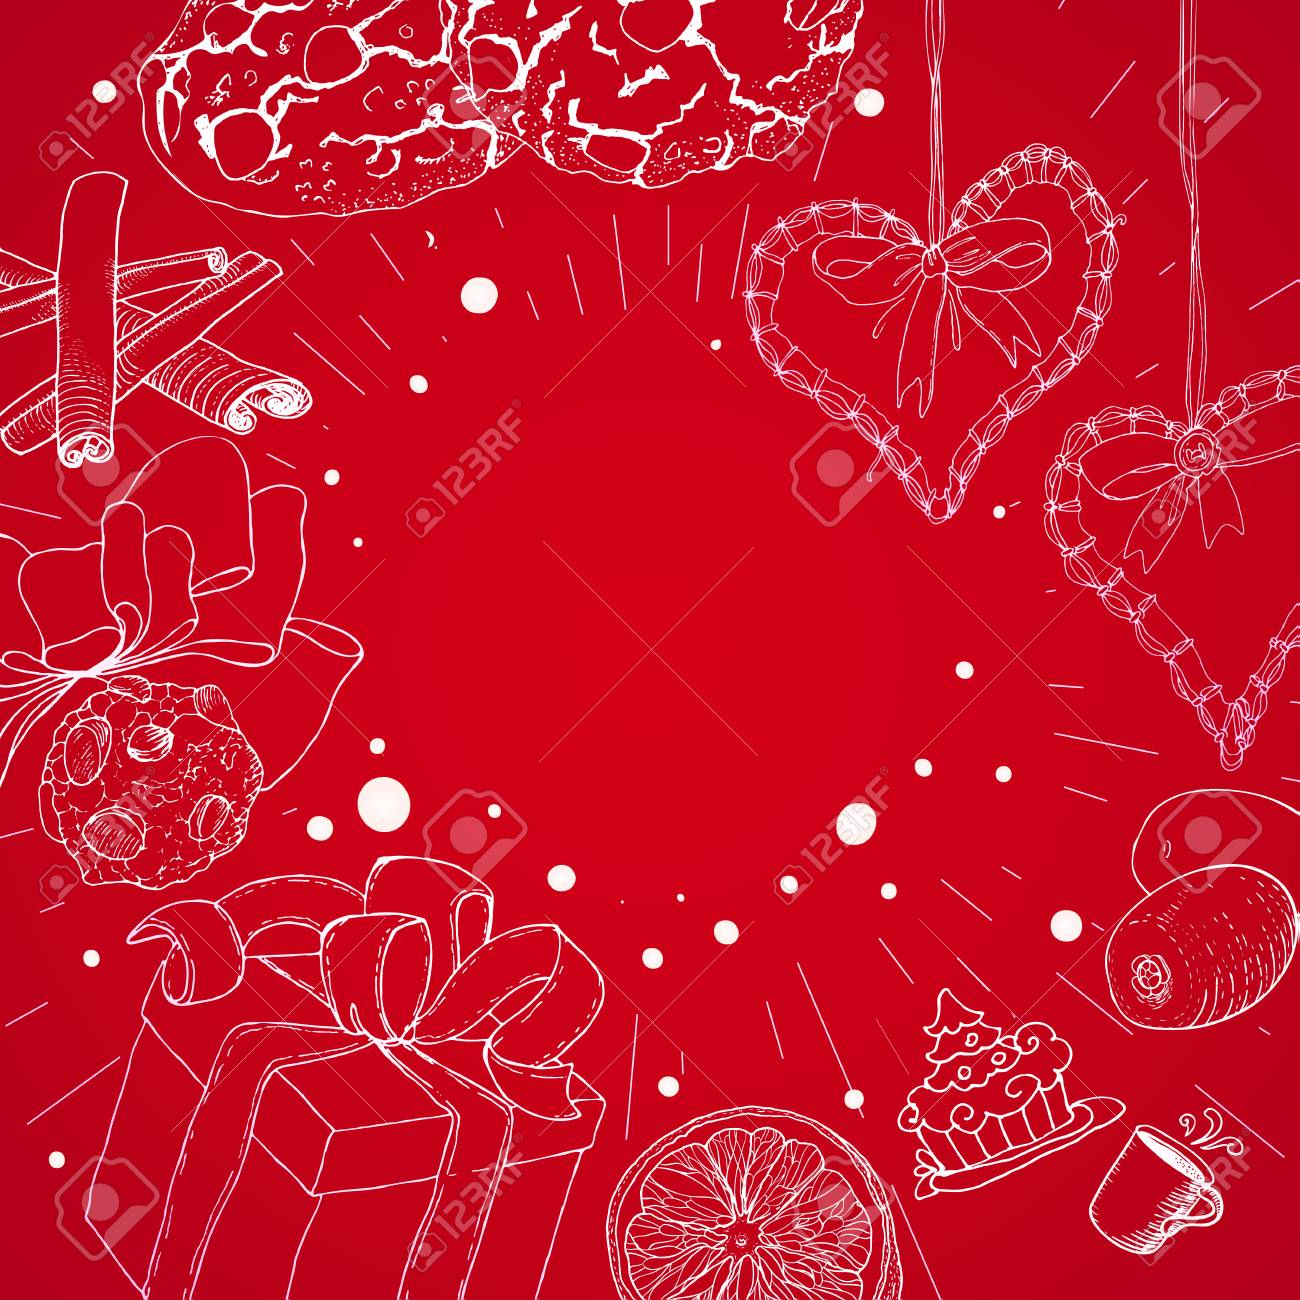 red christmas background with linear sketch illustrations at old paper new year banner or greetings